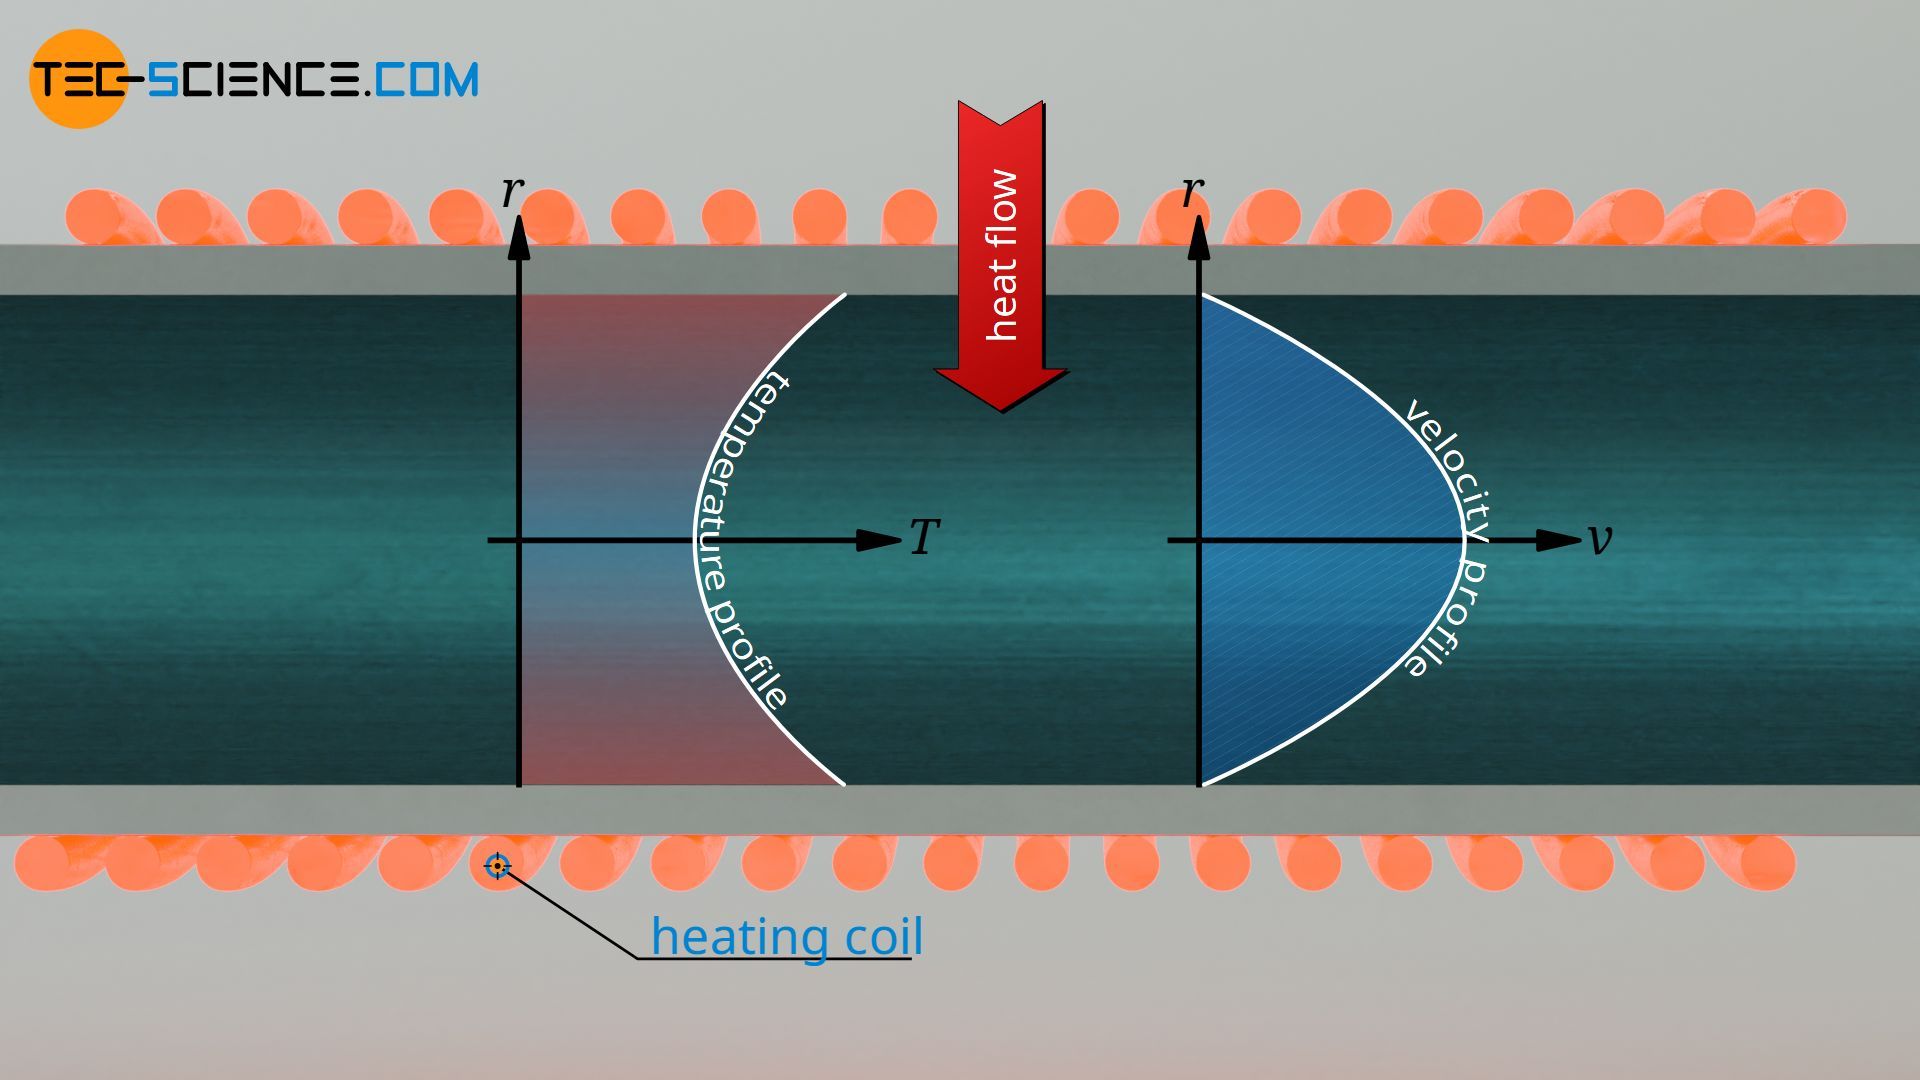 Convective heat transfer between a heated pipe and a fluid flowing through it